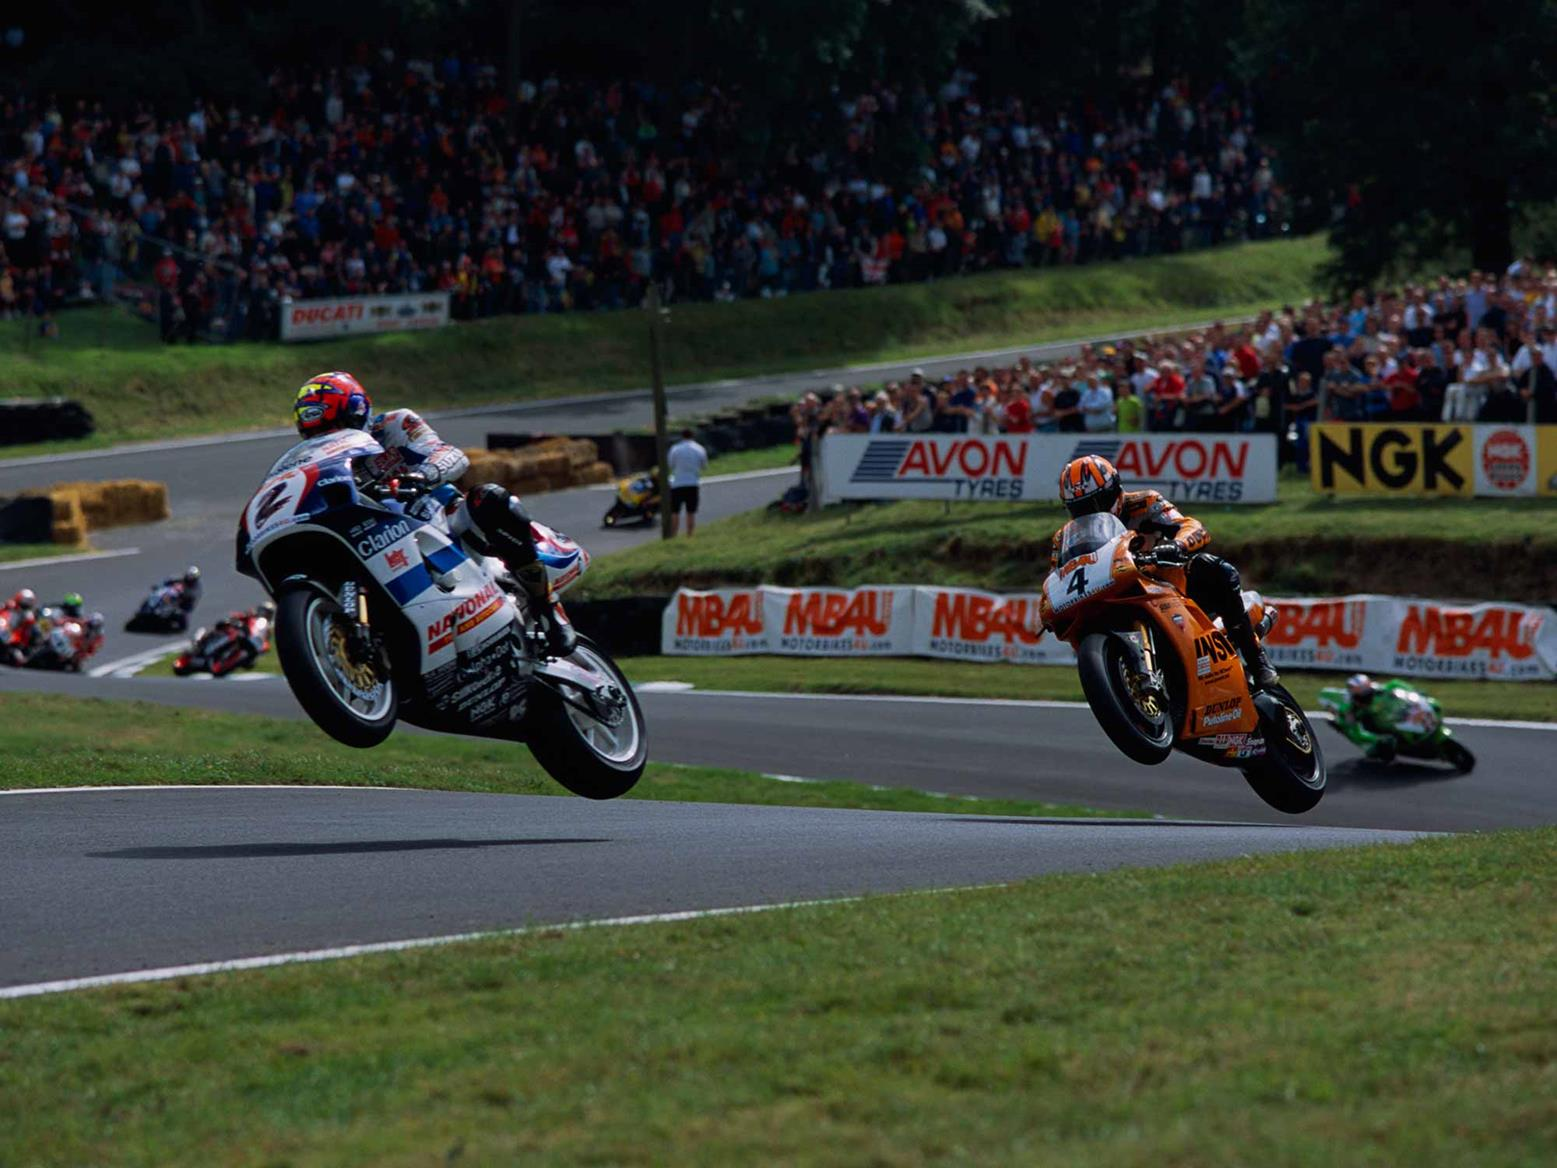 Jumping the Suzuki at Cadwell Park